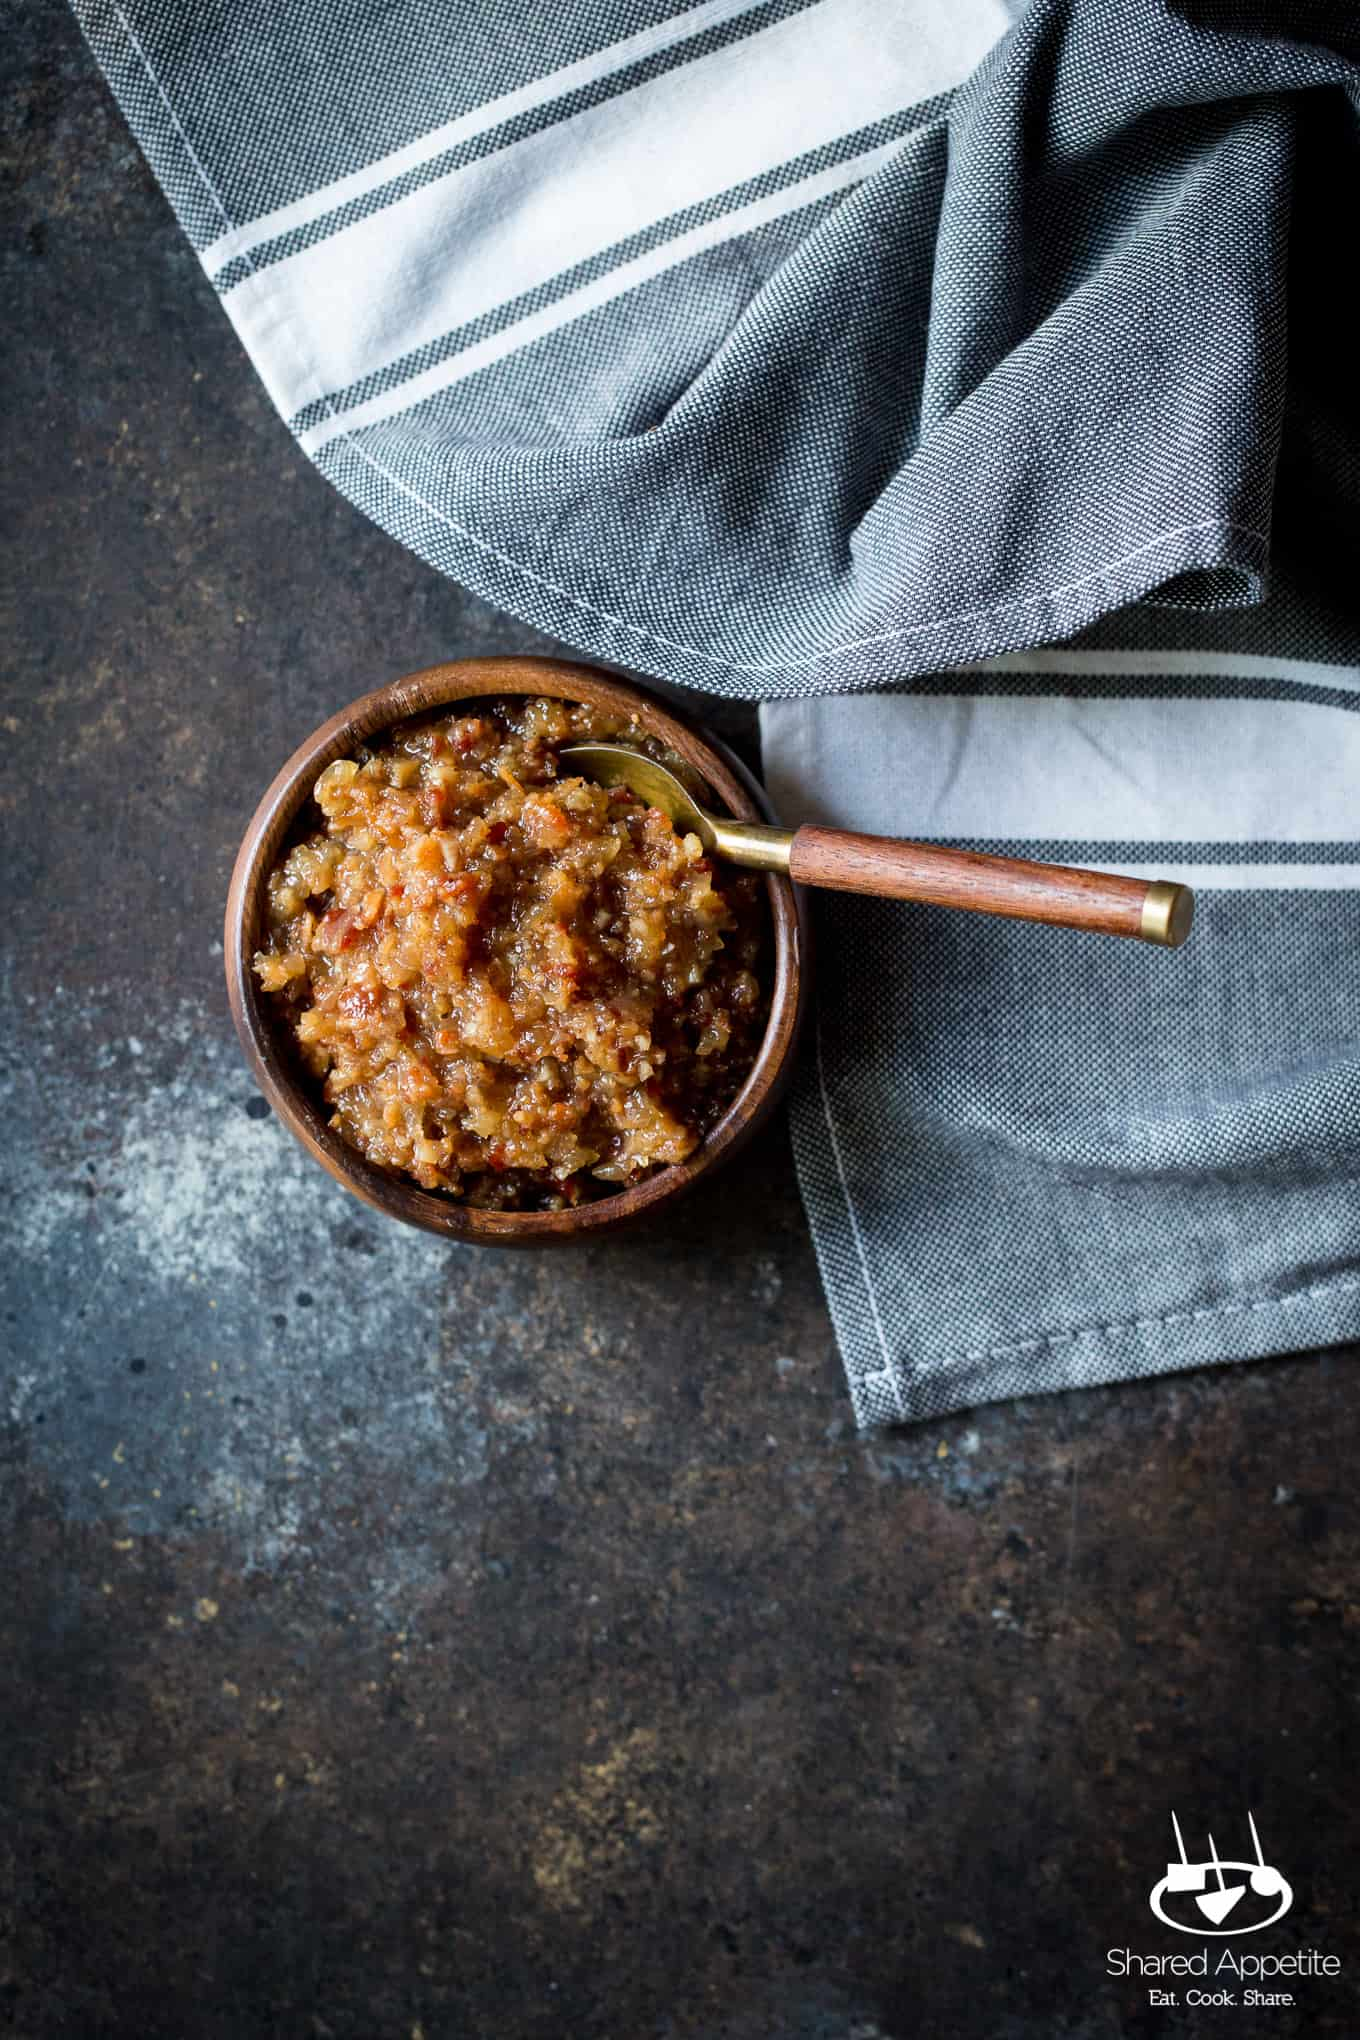 Bacon Jam made with onions, bacon, and apple juice! The perfect condiment for avocado toast, burgers, and goes great with eggs! Full recipe on sharedappetite.com